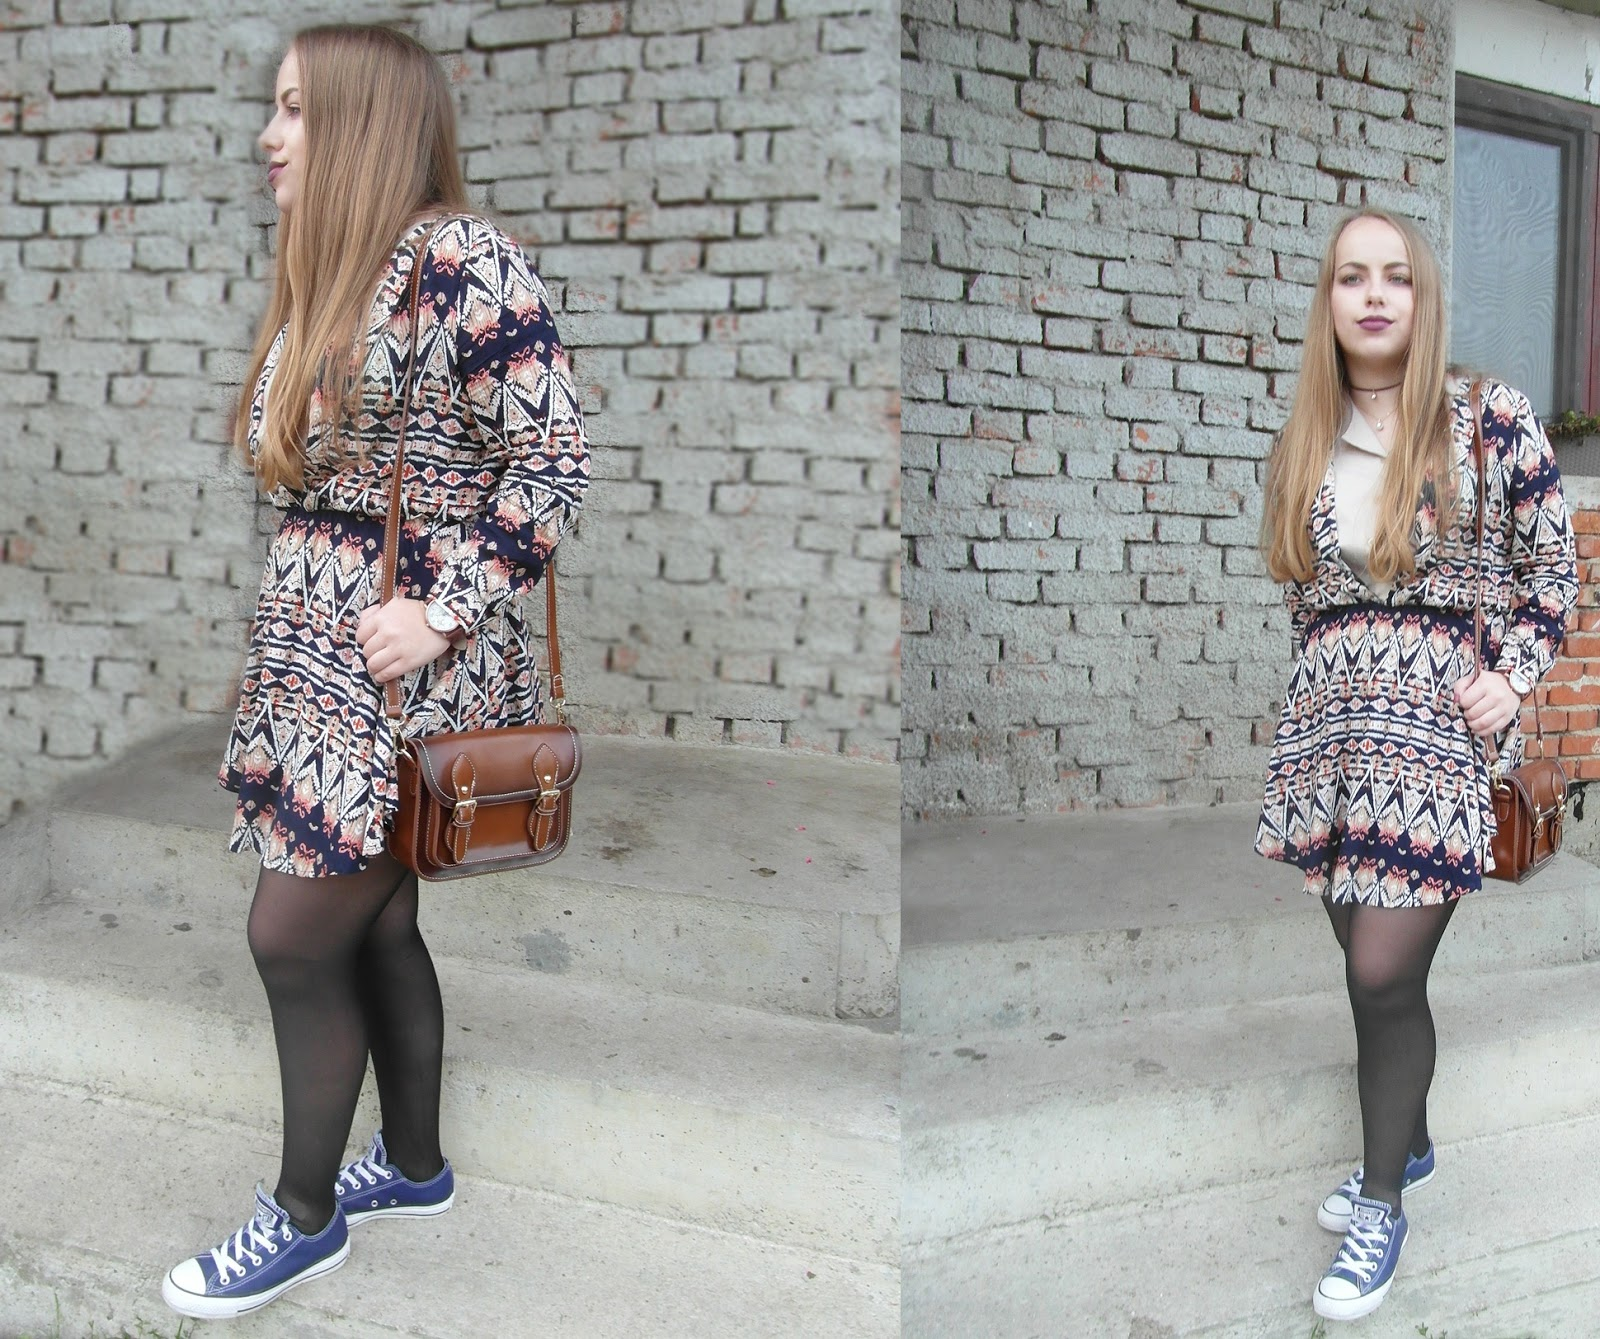 OOTD #1 [Autumn Geometric Dress]